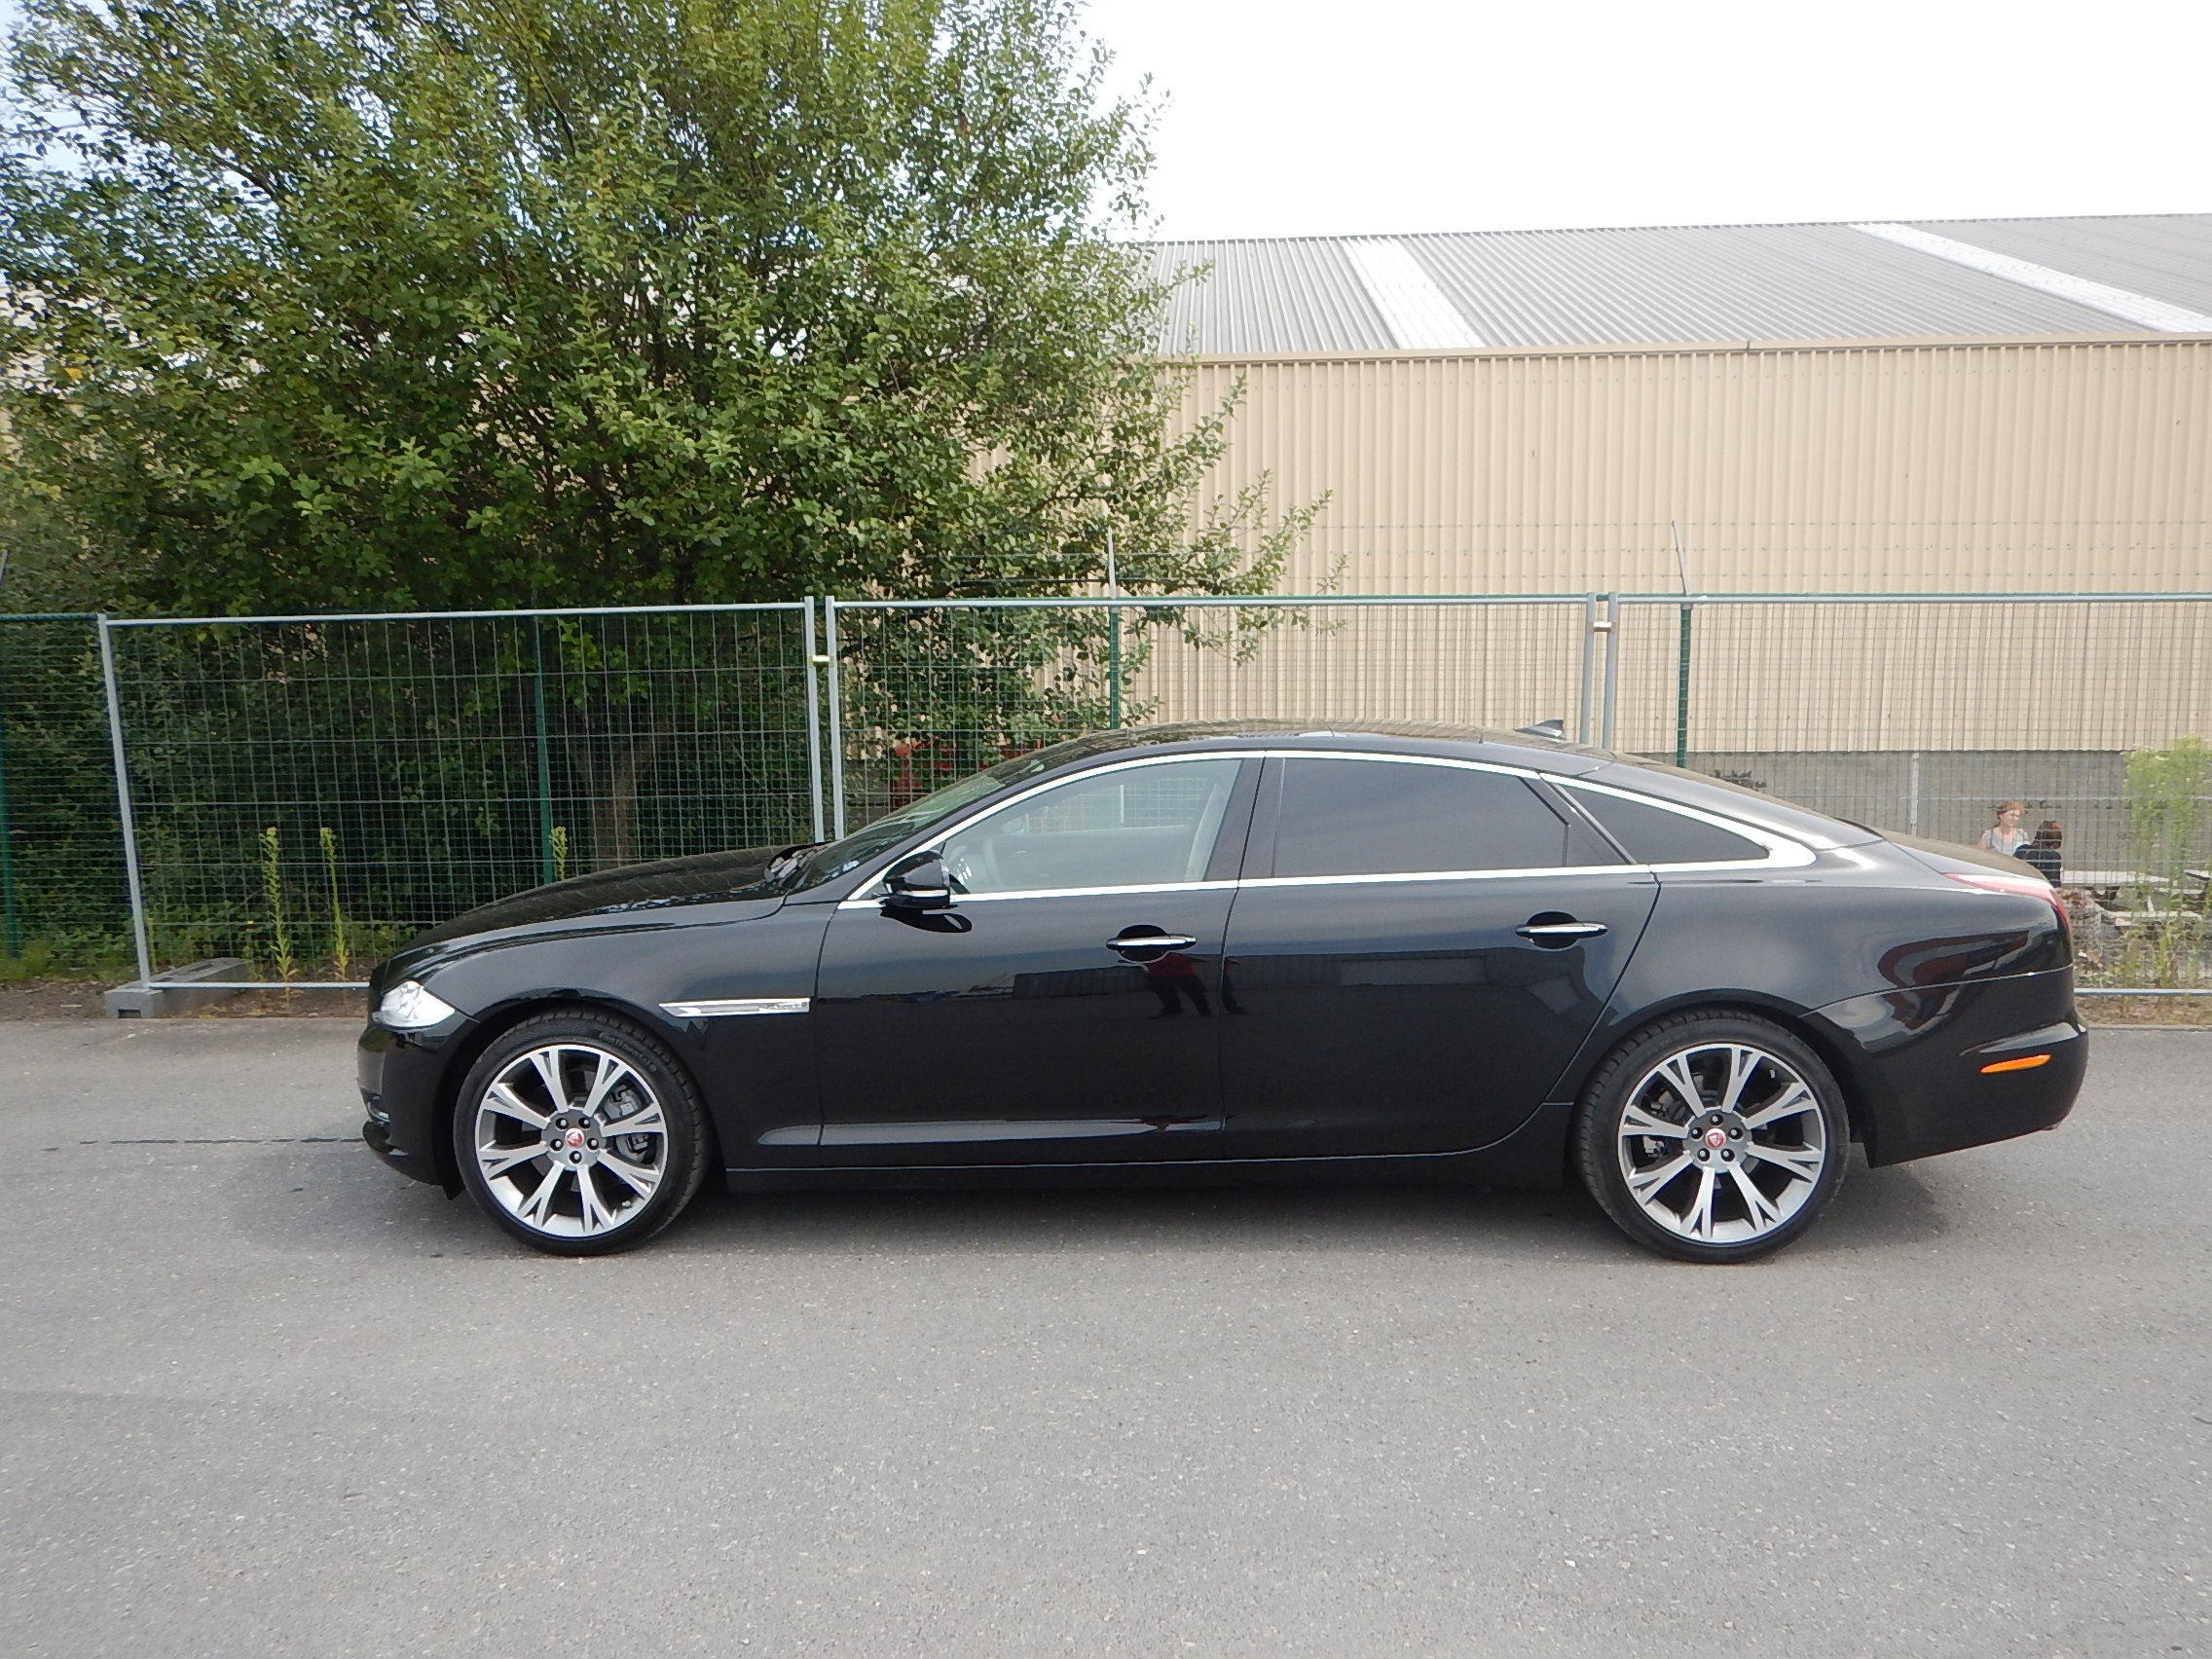 <a href='https://www.autoredo.com/en/segment/vehicles/city-car-sedan/' title='Export City car &amp; Sedan'>City car &amp; Sedan</a> Jaguar XJ